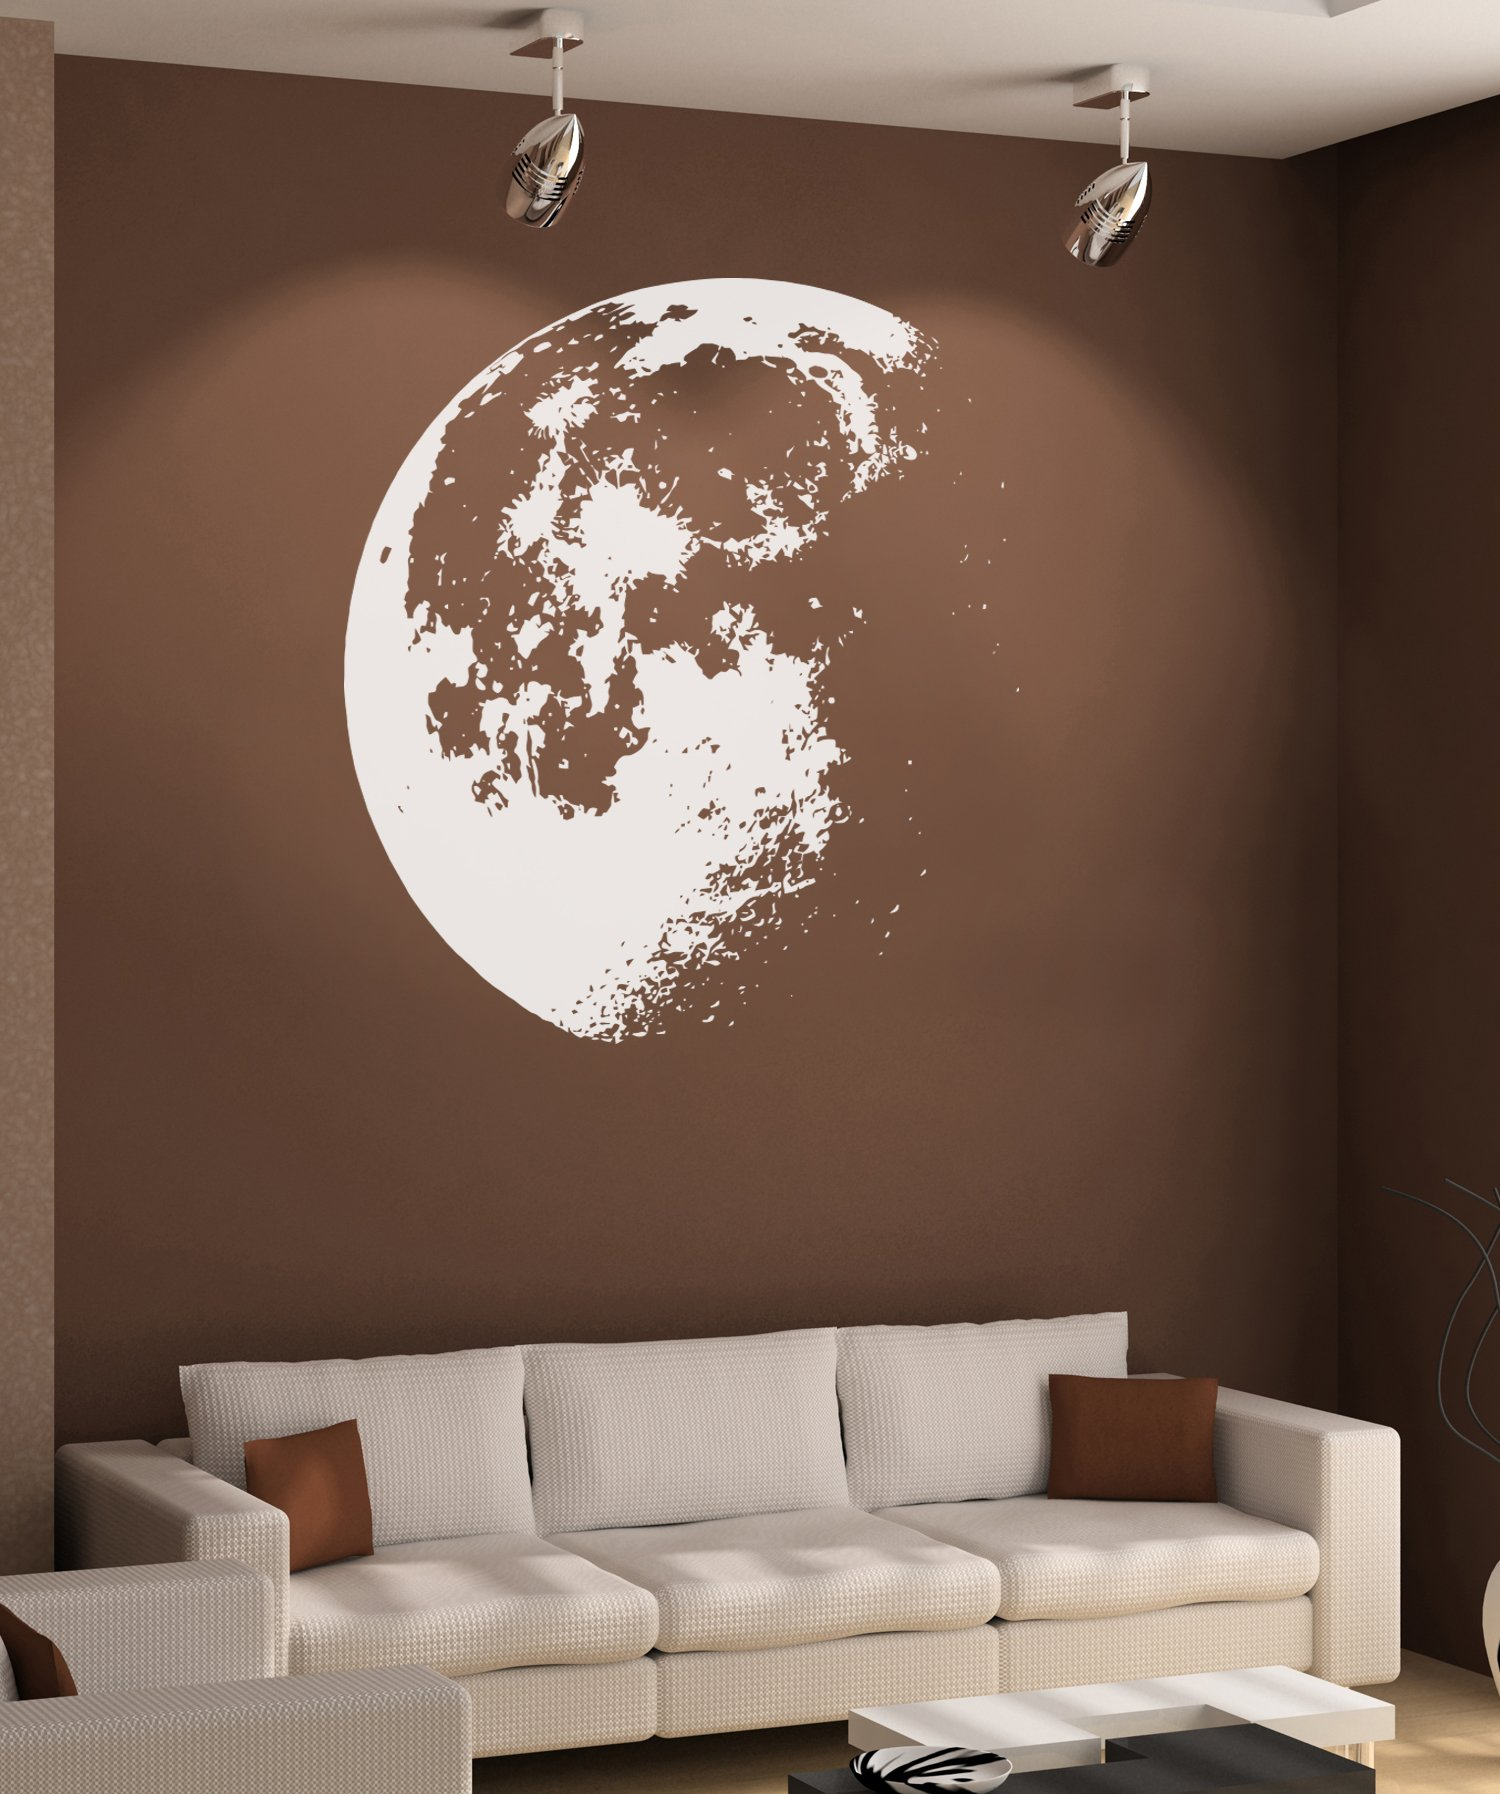 Large Crescent Moon Wall Decal Sticker by Stickerbrand - White color, Large 53in x 48in. #523A Easy to Apply & Removable. by Stickerbrand (Image #8)